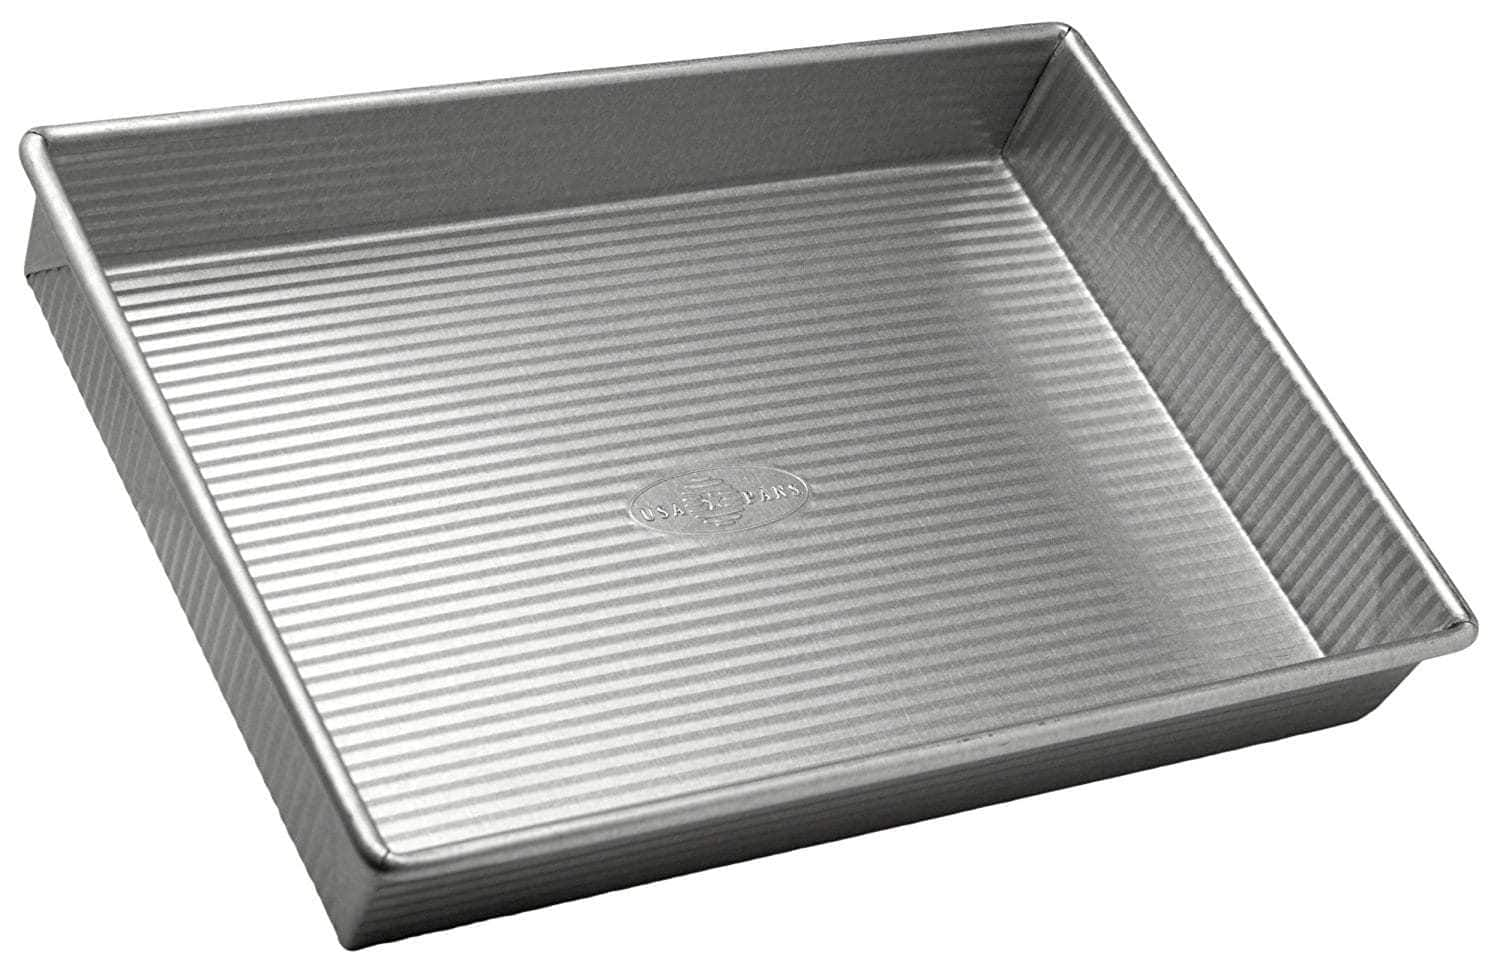 9 by 13 inch silver pan on white